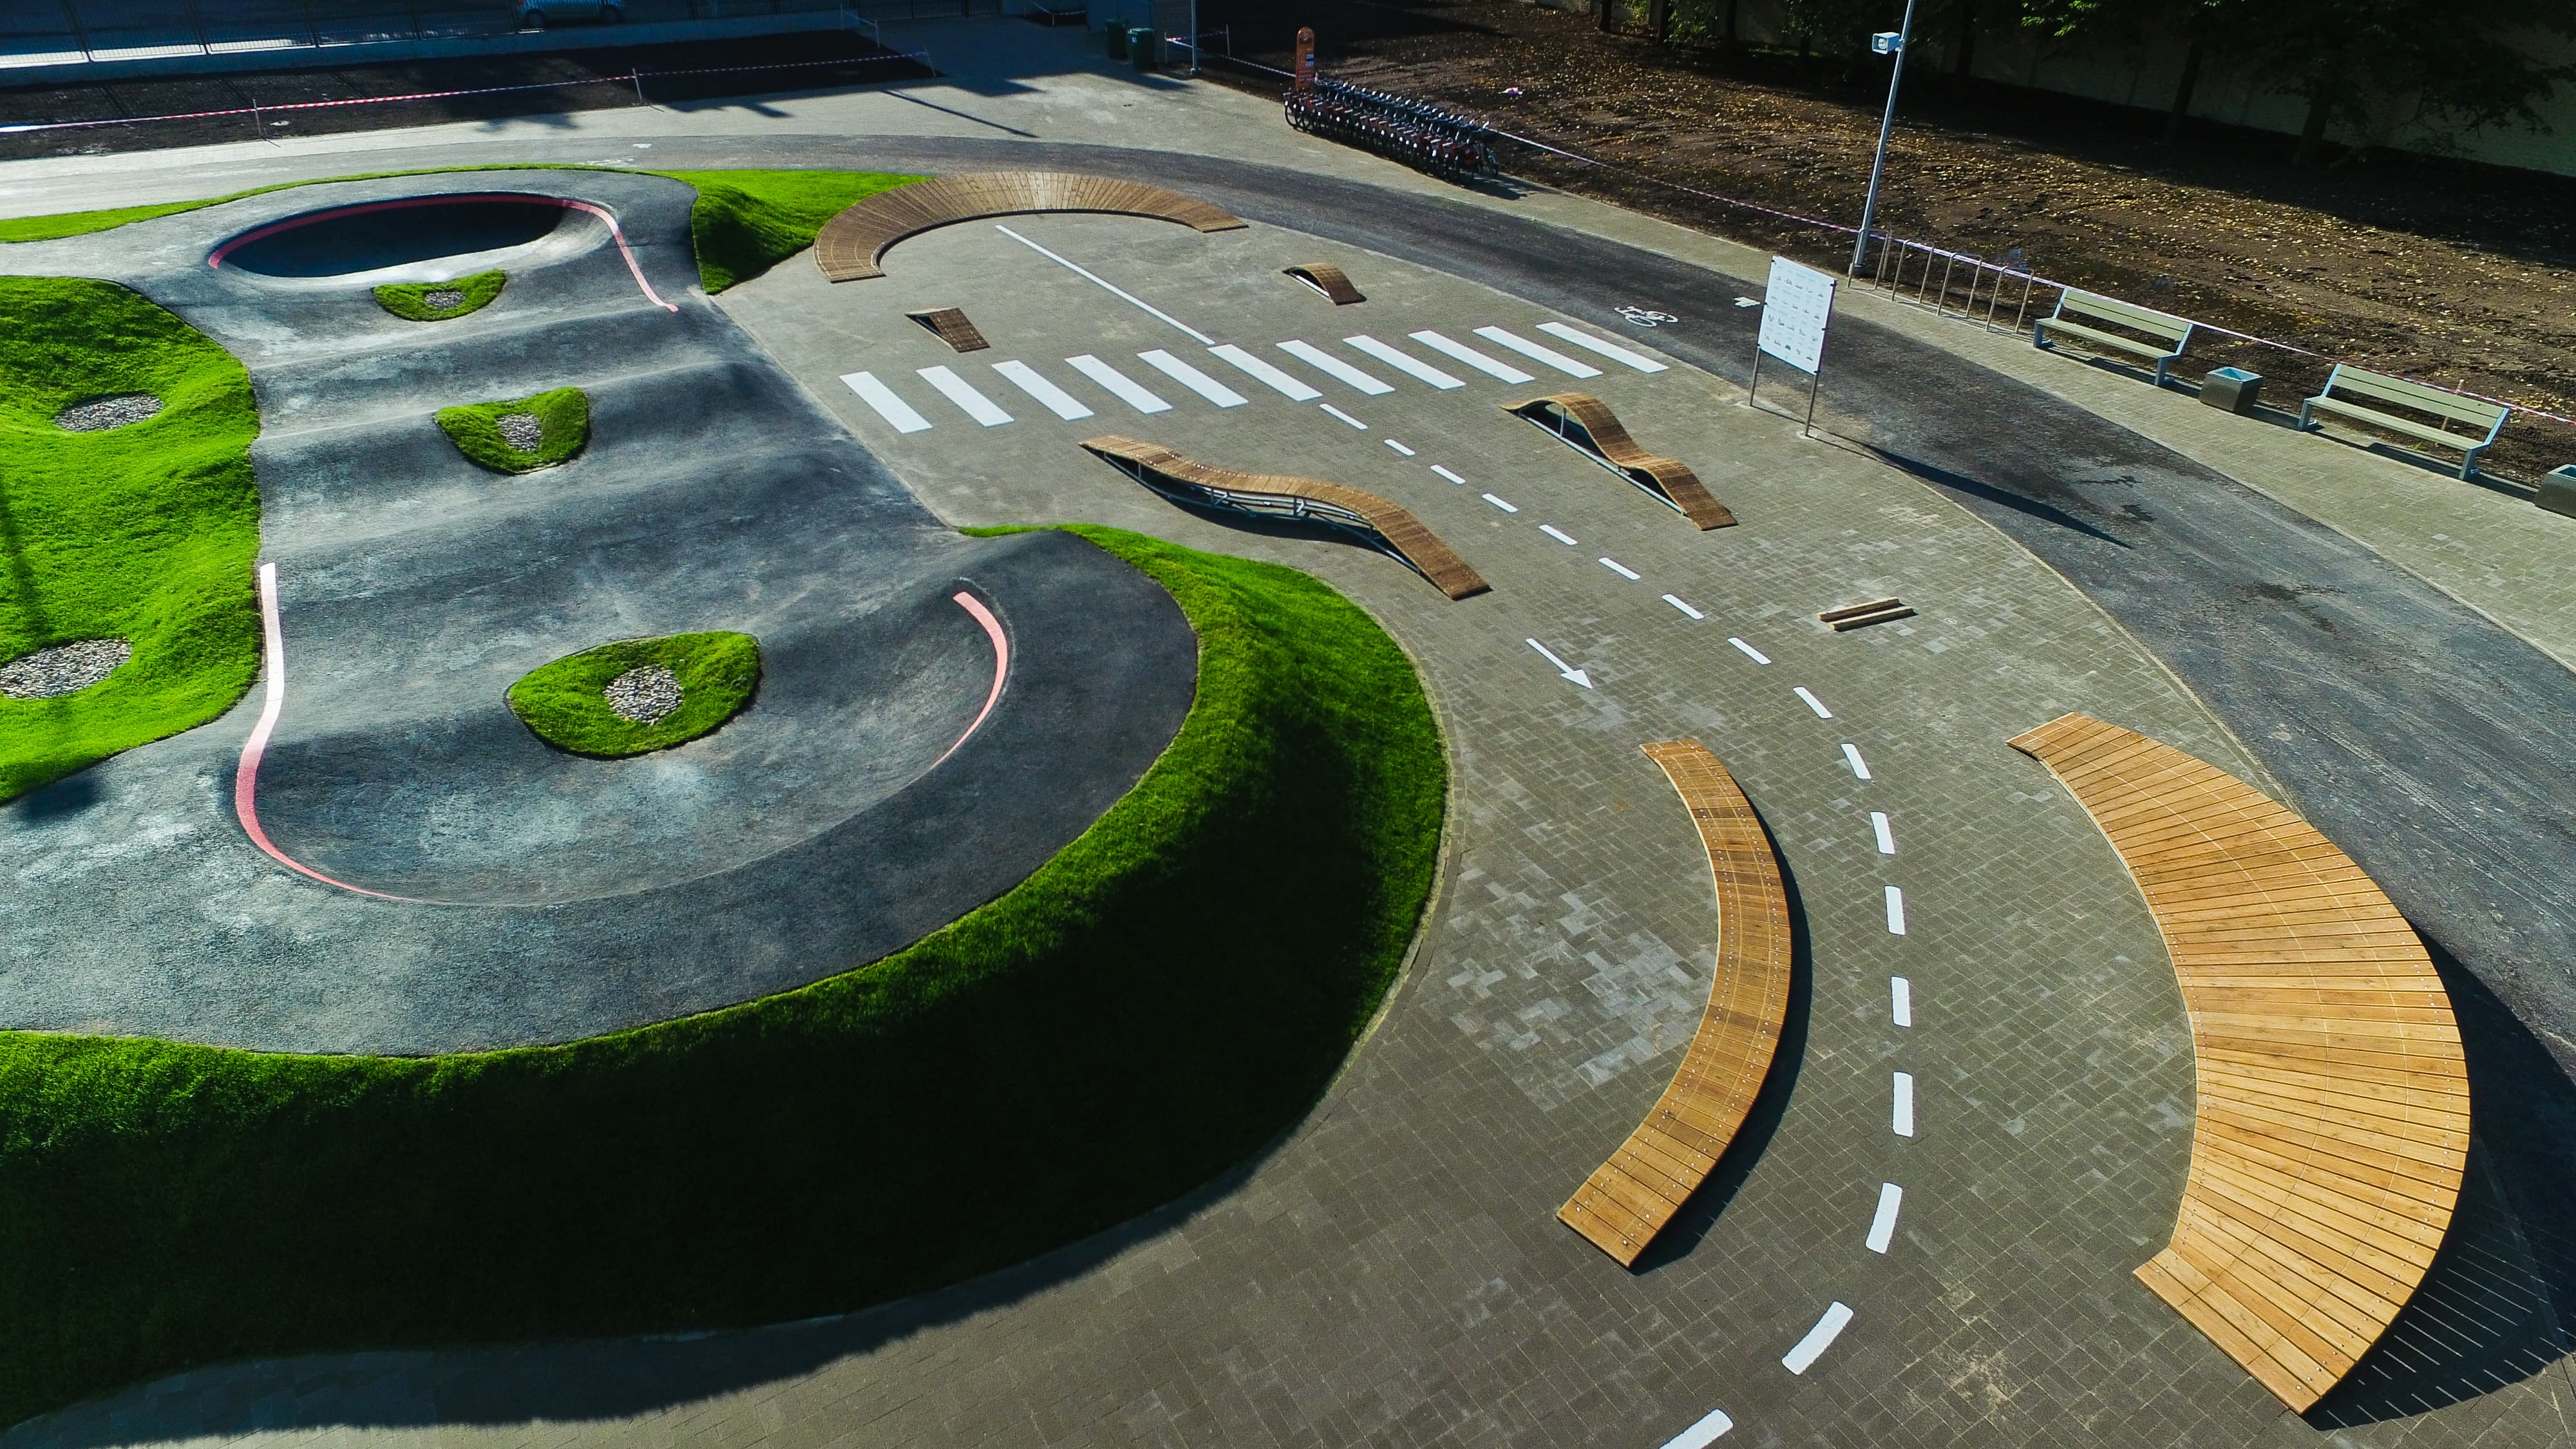 The wooden adventure skills track in Riga, Latvias central sport square is ideal for novices